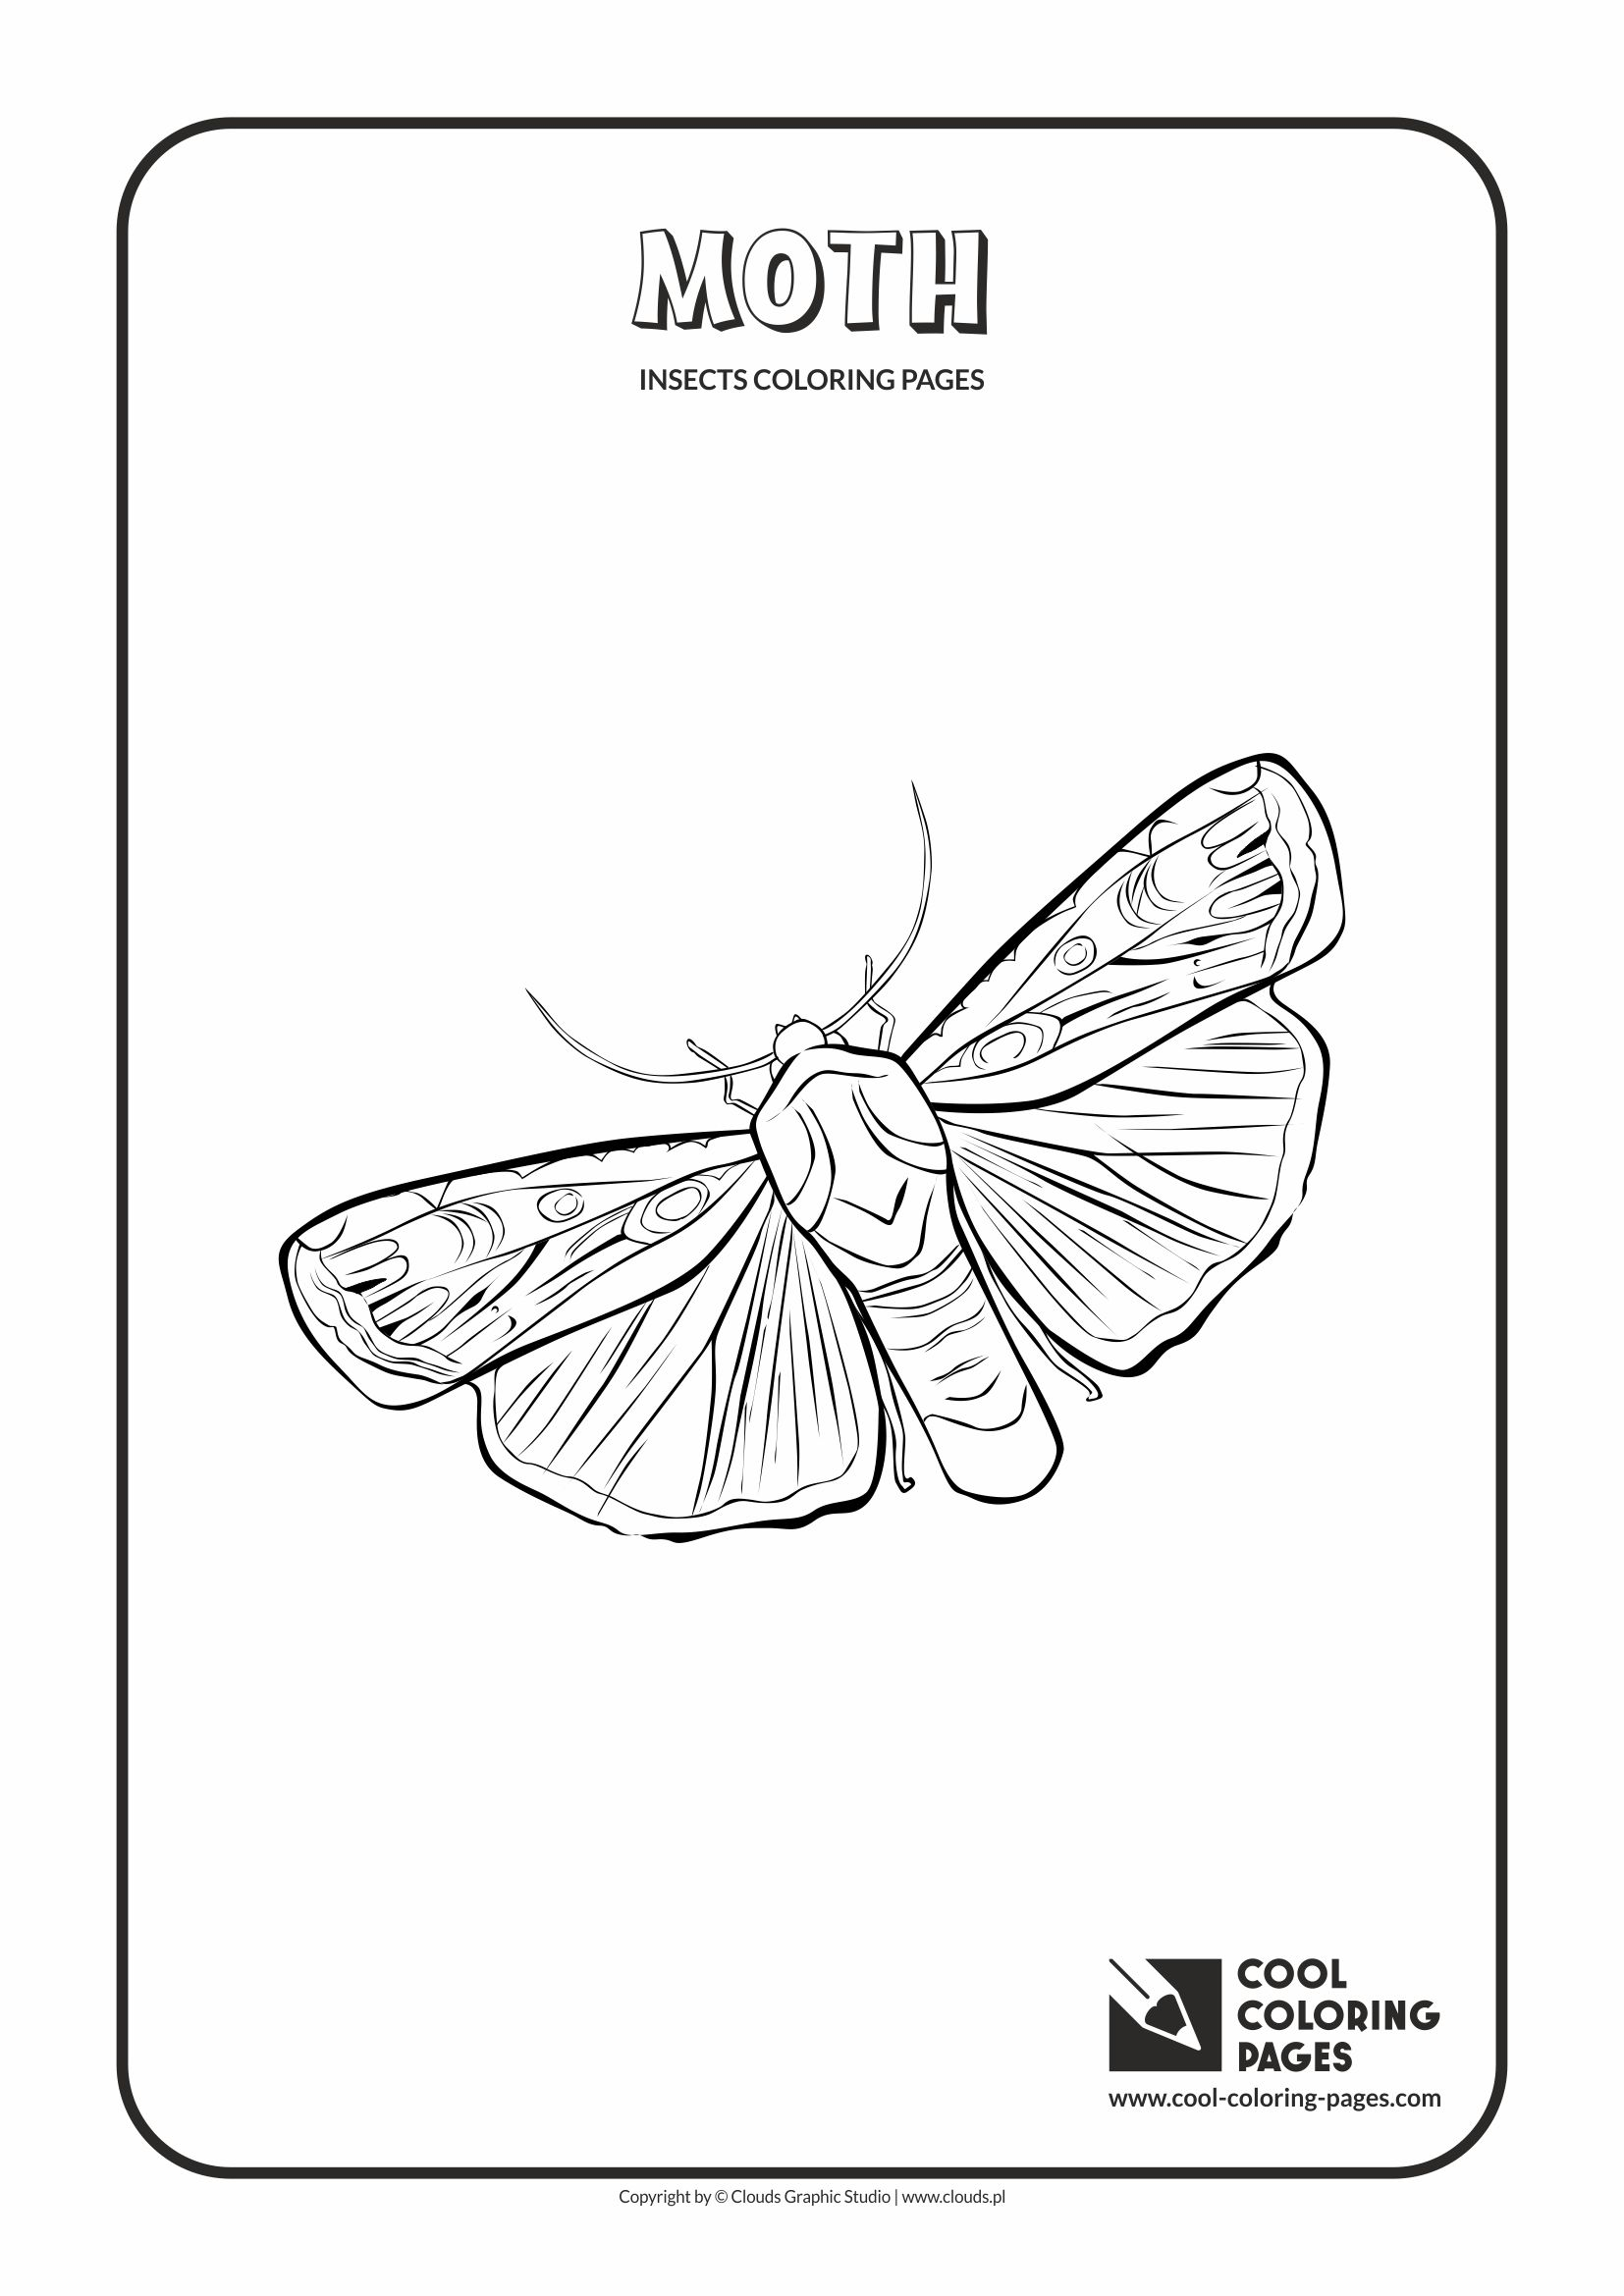 moth coloring page cool coloring pages